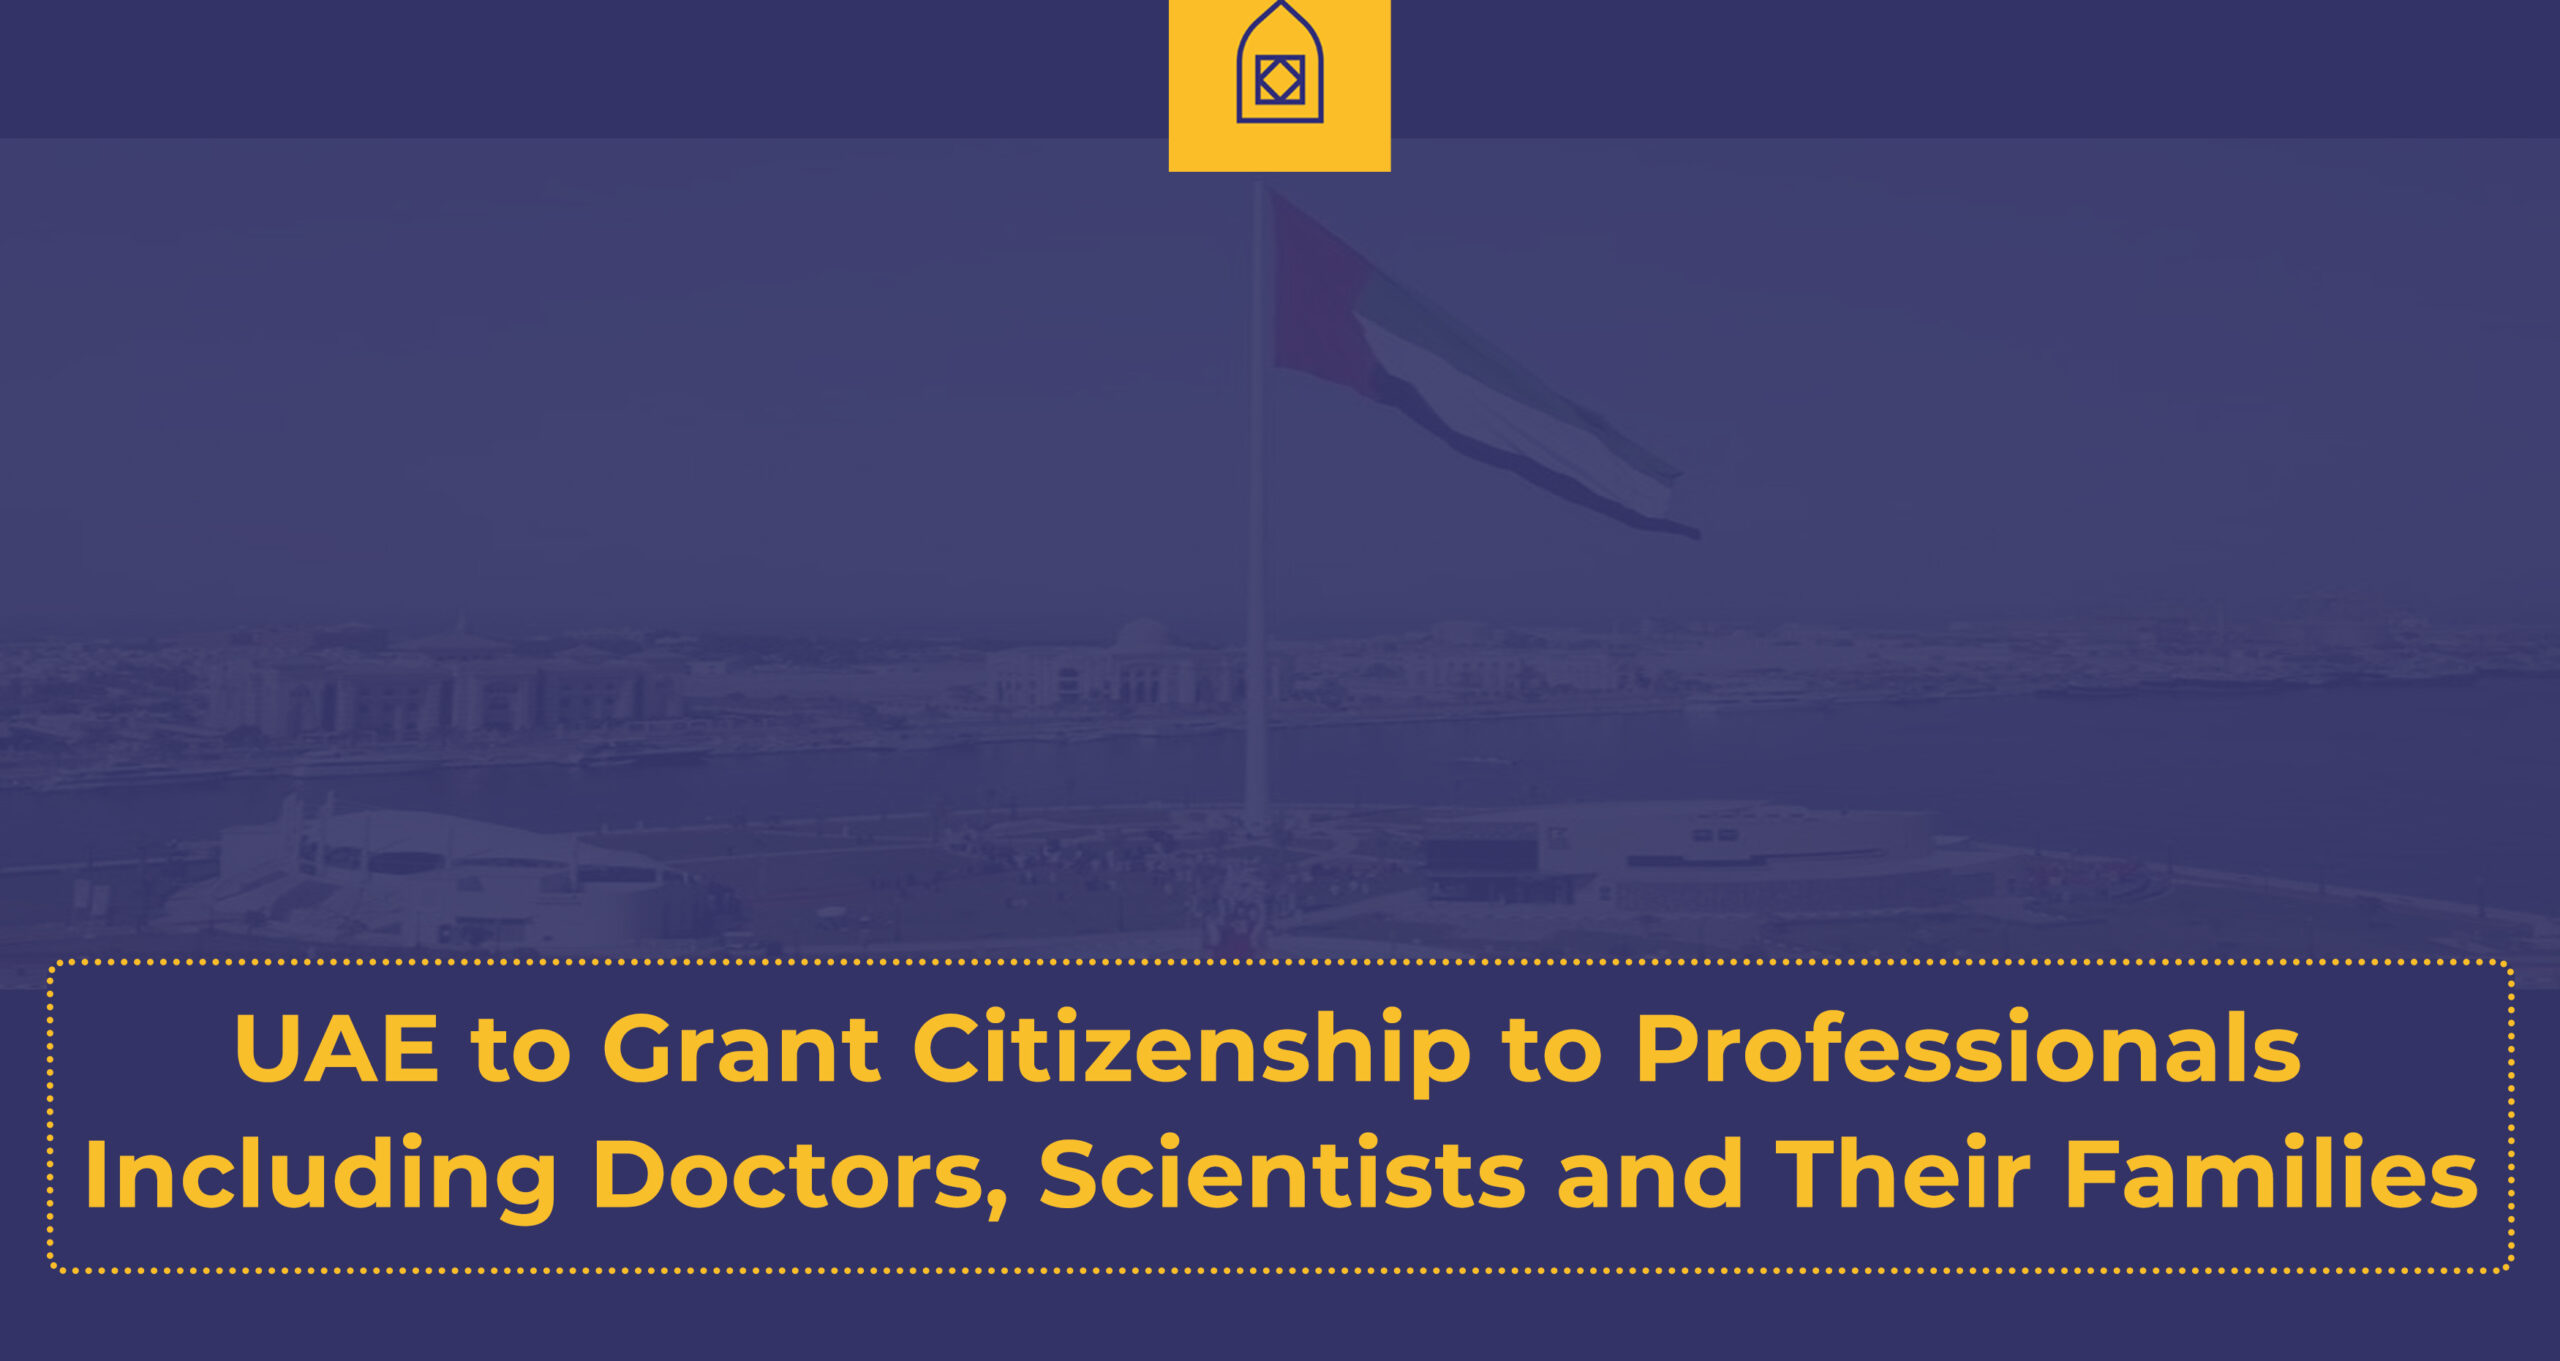 UAE to Grant Citizenship to Professionals Including Doctors, Scientists and Their Families